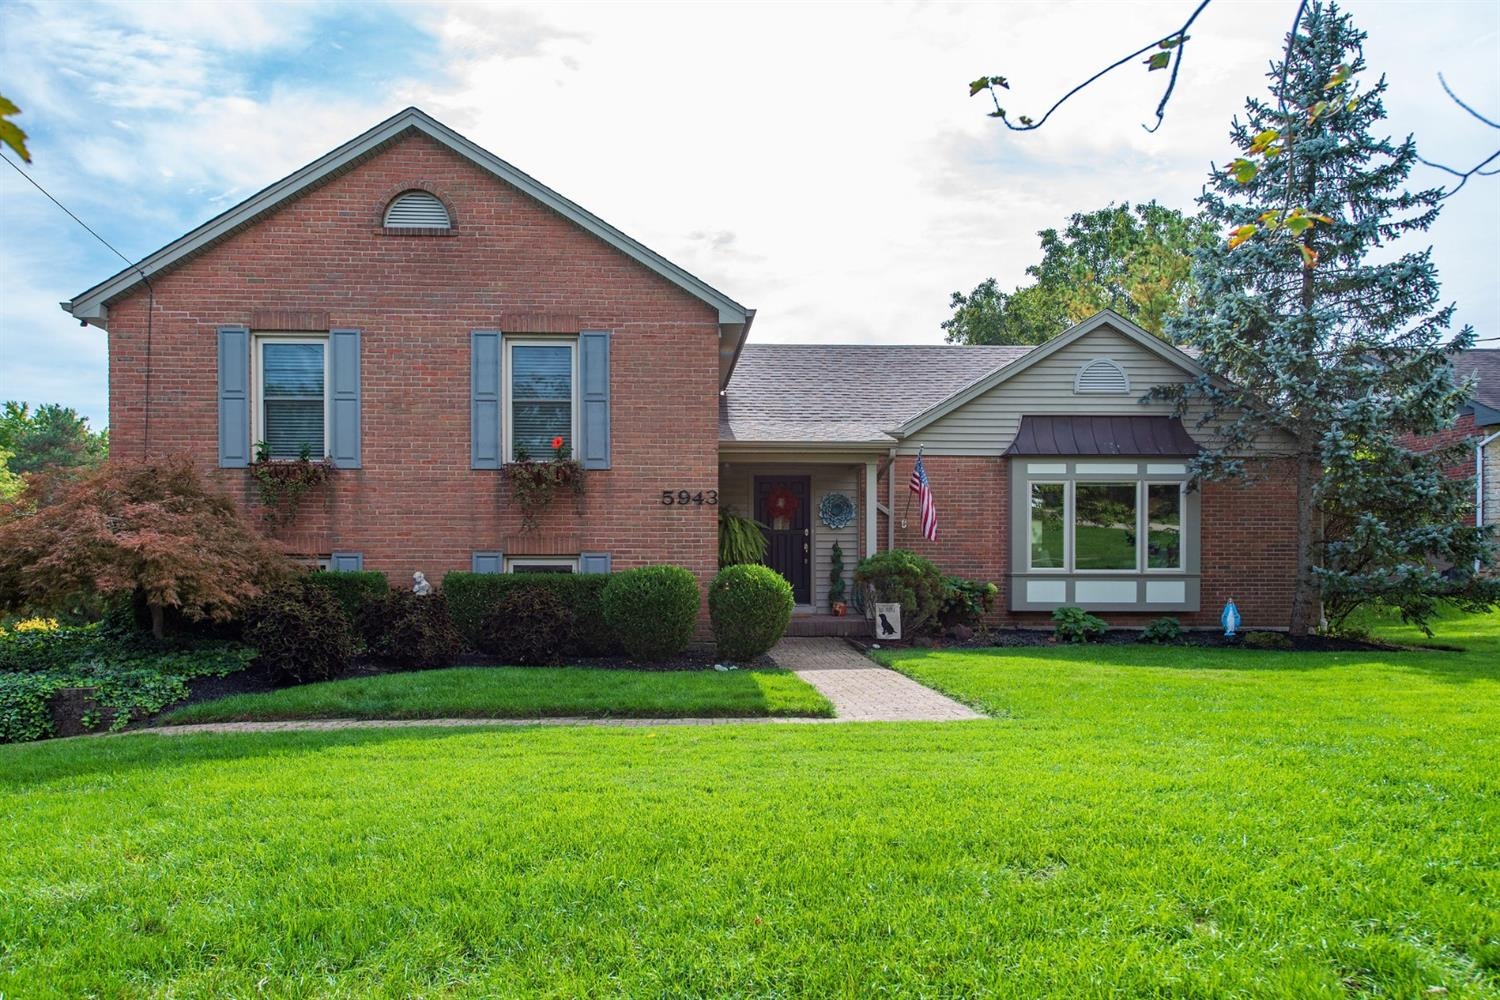 5943 Cleves Warsaw Pike, Delhi Twp, Ohio 45233, 4 Bedrooms Bedrooms, 10 Rooms Rooms,3 BathroomsBathrooms,Single Family Residence,For Sale,Cleves Warsaw,1719308